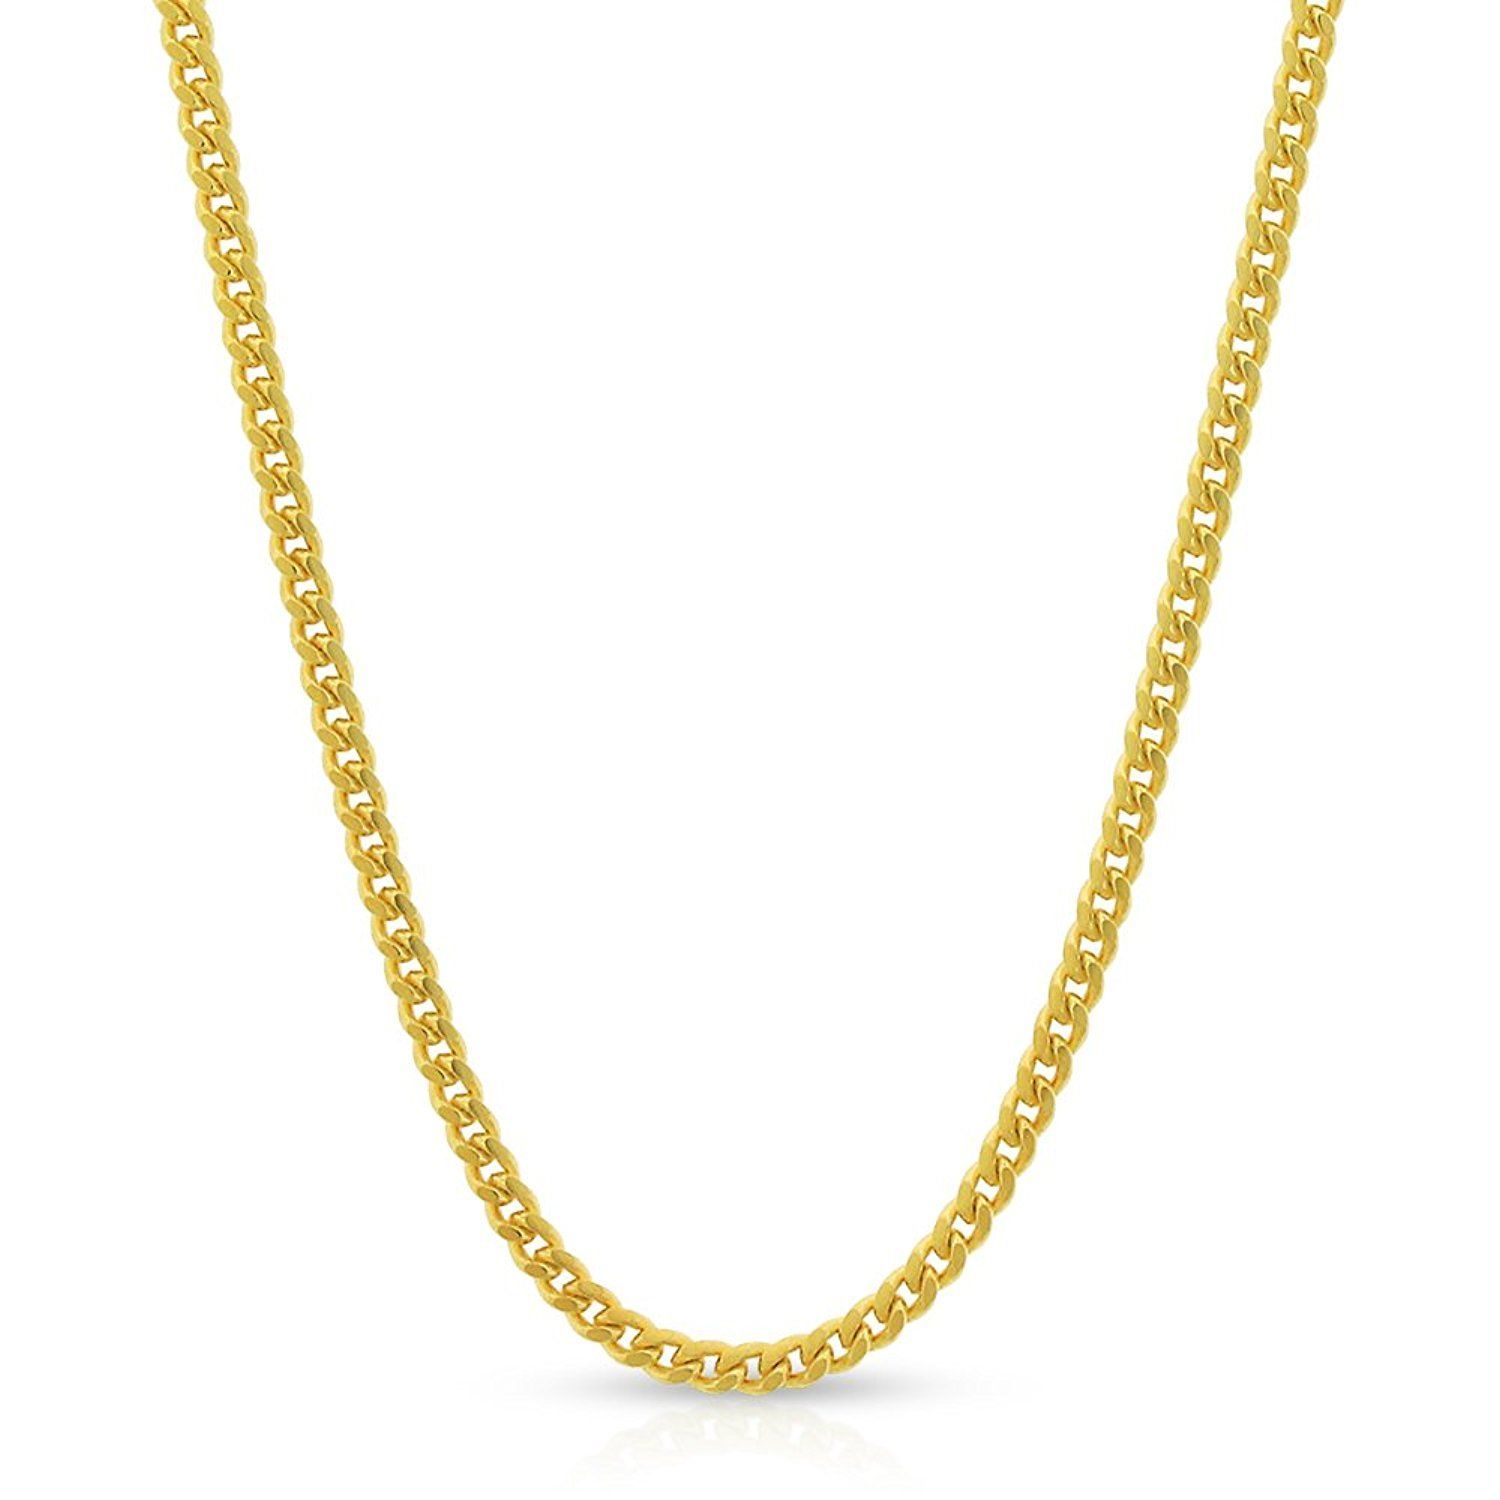 10k Yellow Gold 2mm Solid Miami Cuban Curb Link Thick Necklace Chain 16'' - 30'' (20)